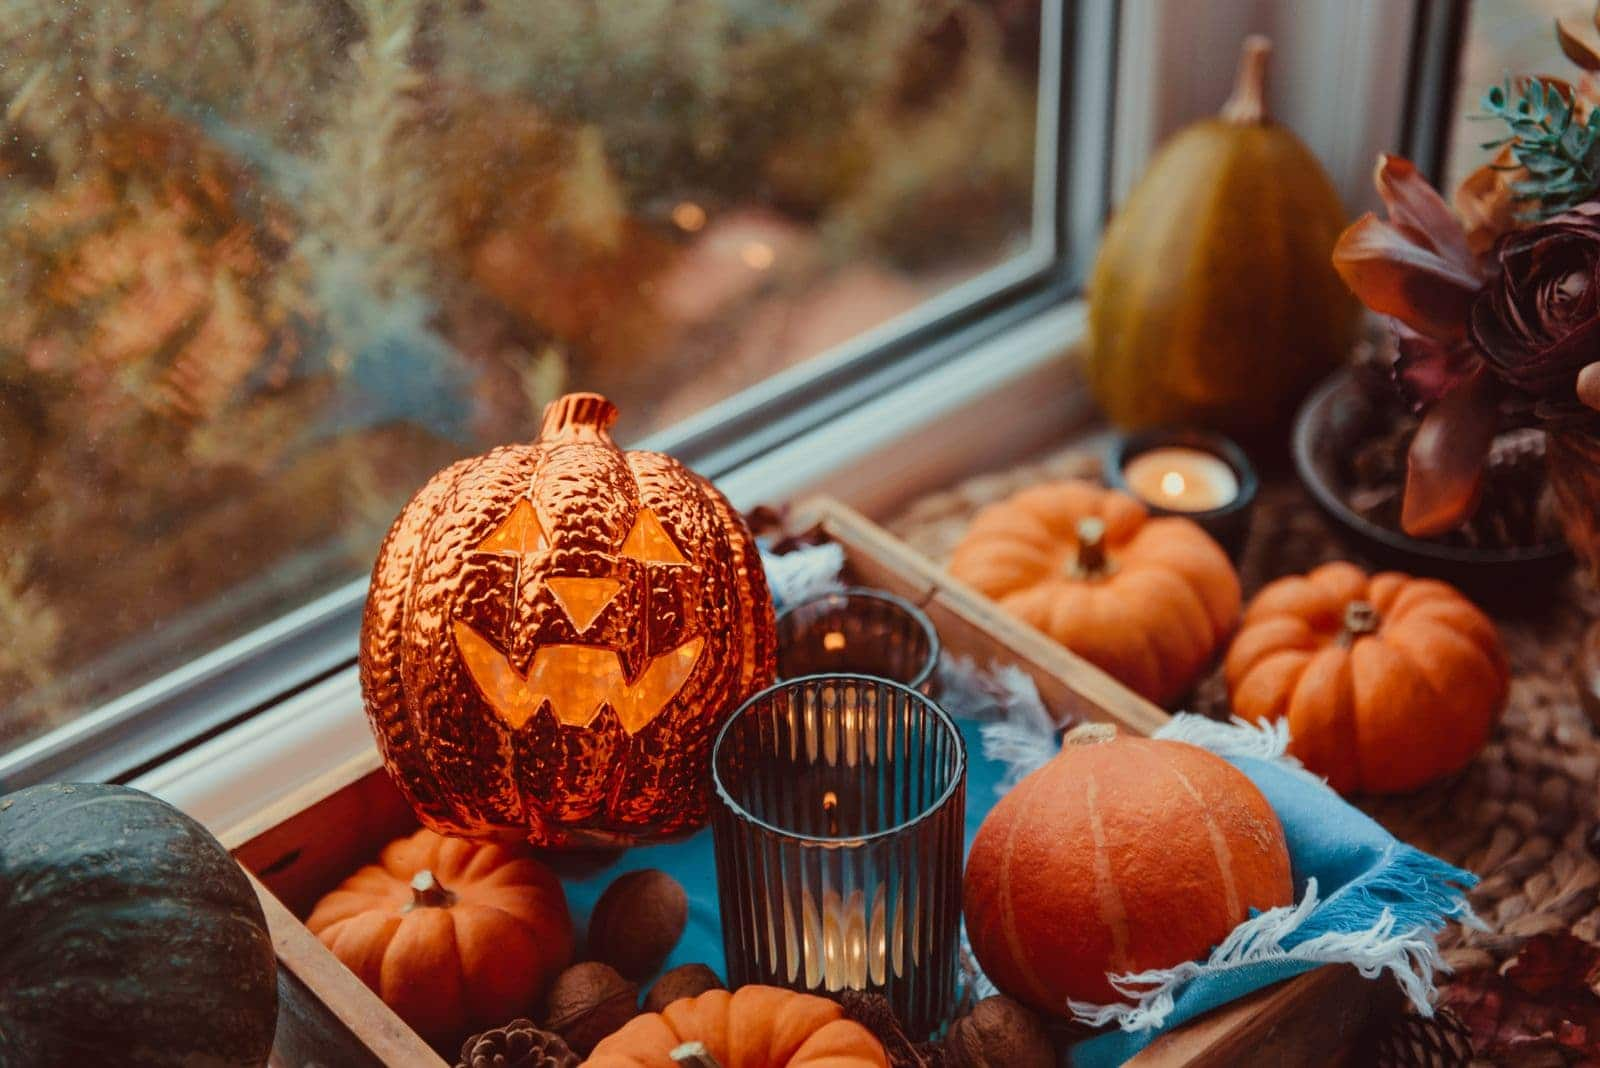 Decorative pumpkins in windowsill